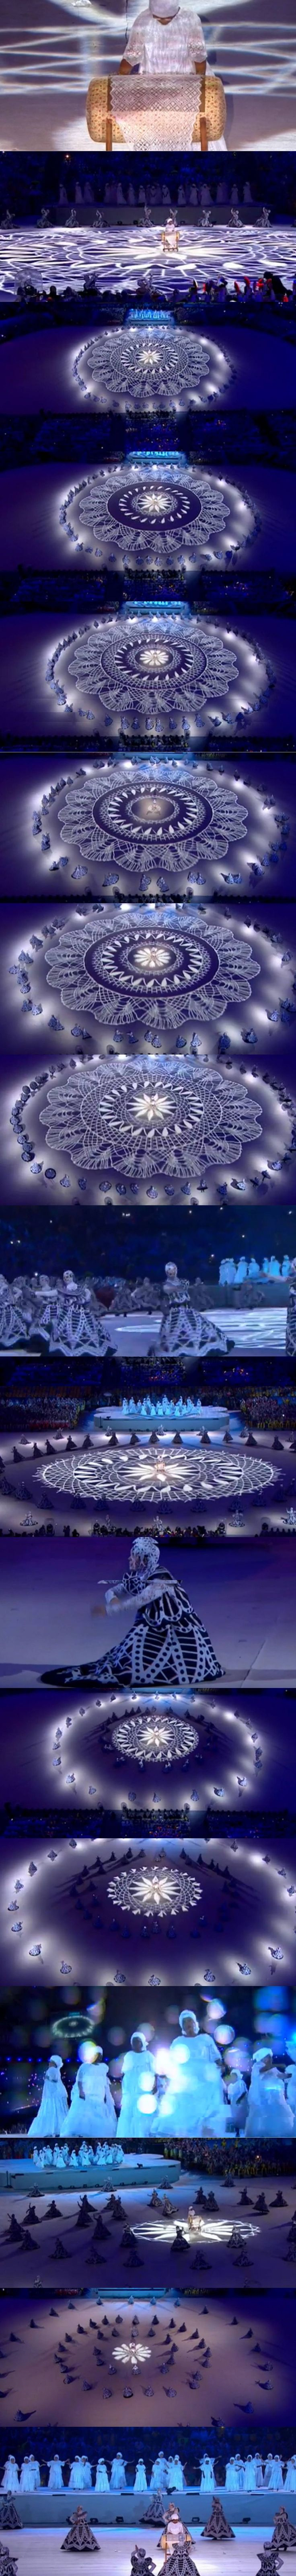 Graceful precision choreography honoring traditional Brazilian lacemakers plying their craft, knotting yarn into a mesmerizing concentrically-netted gauze veil of fabric that delicately radiates as if mysteriously illuminated from within (screen-capture strip of closing ceremonies at the 2016 Summer Olympics, Rio de Janiero)